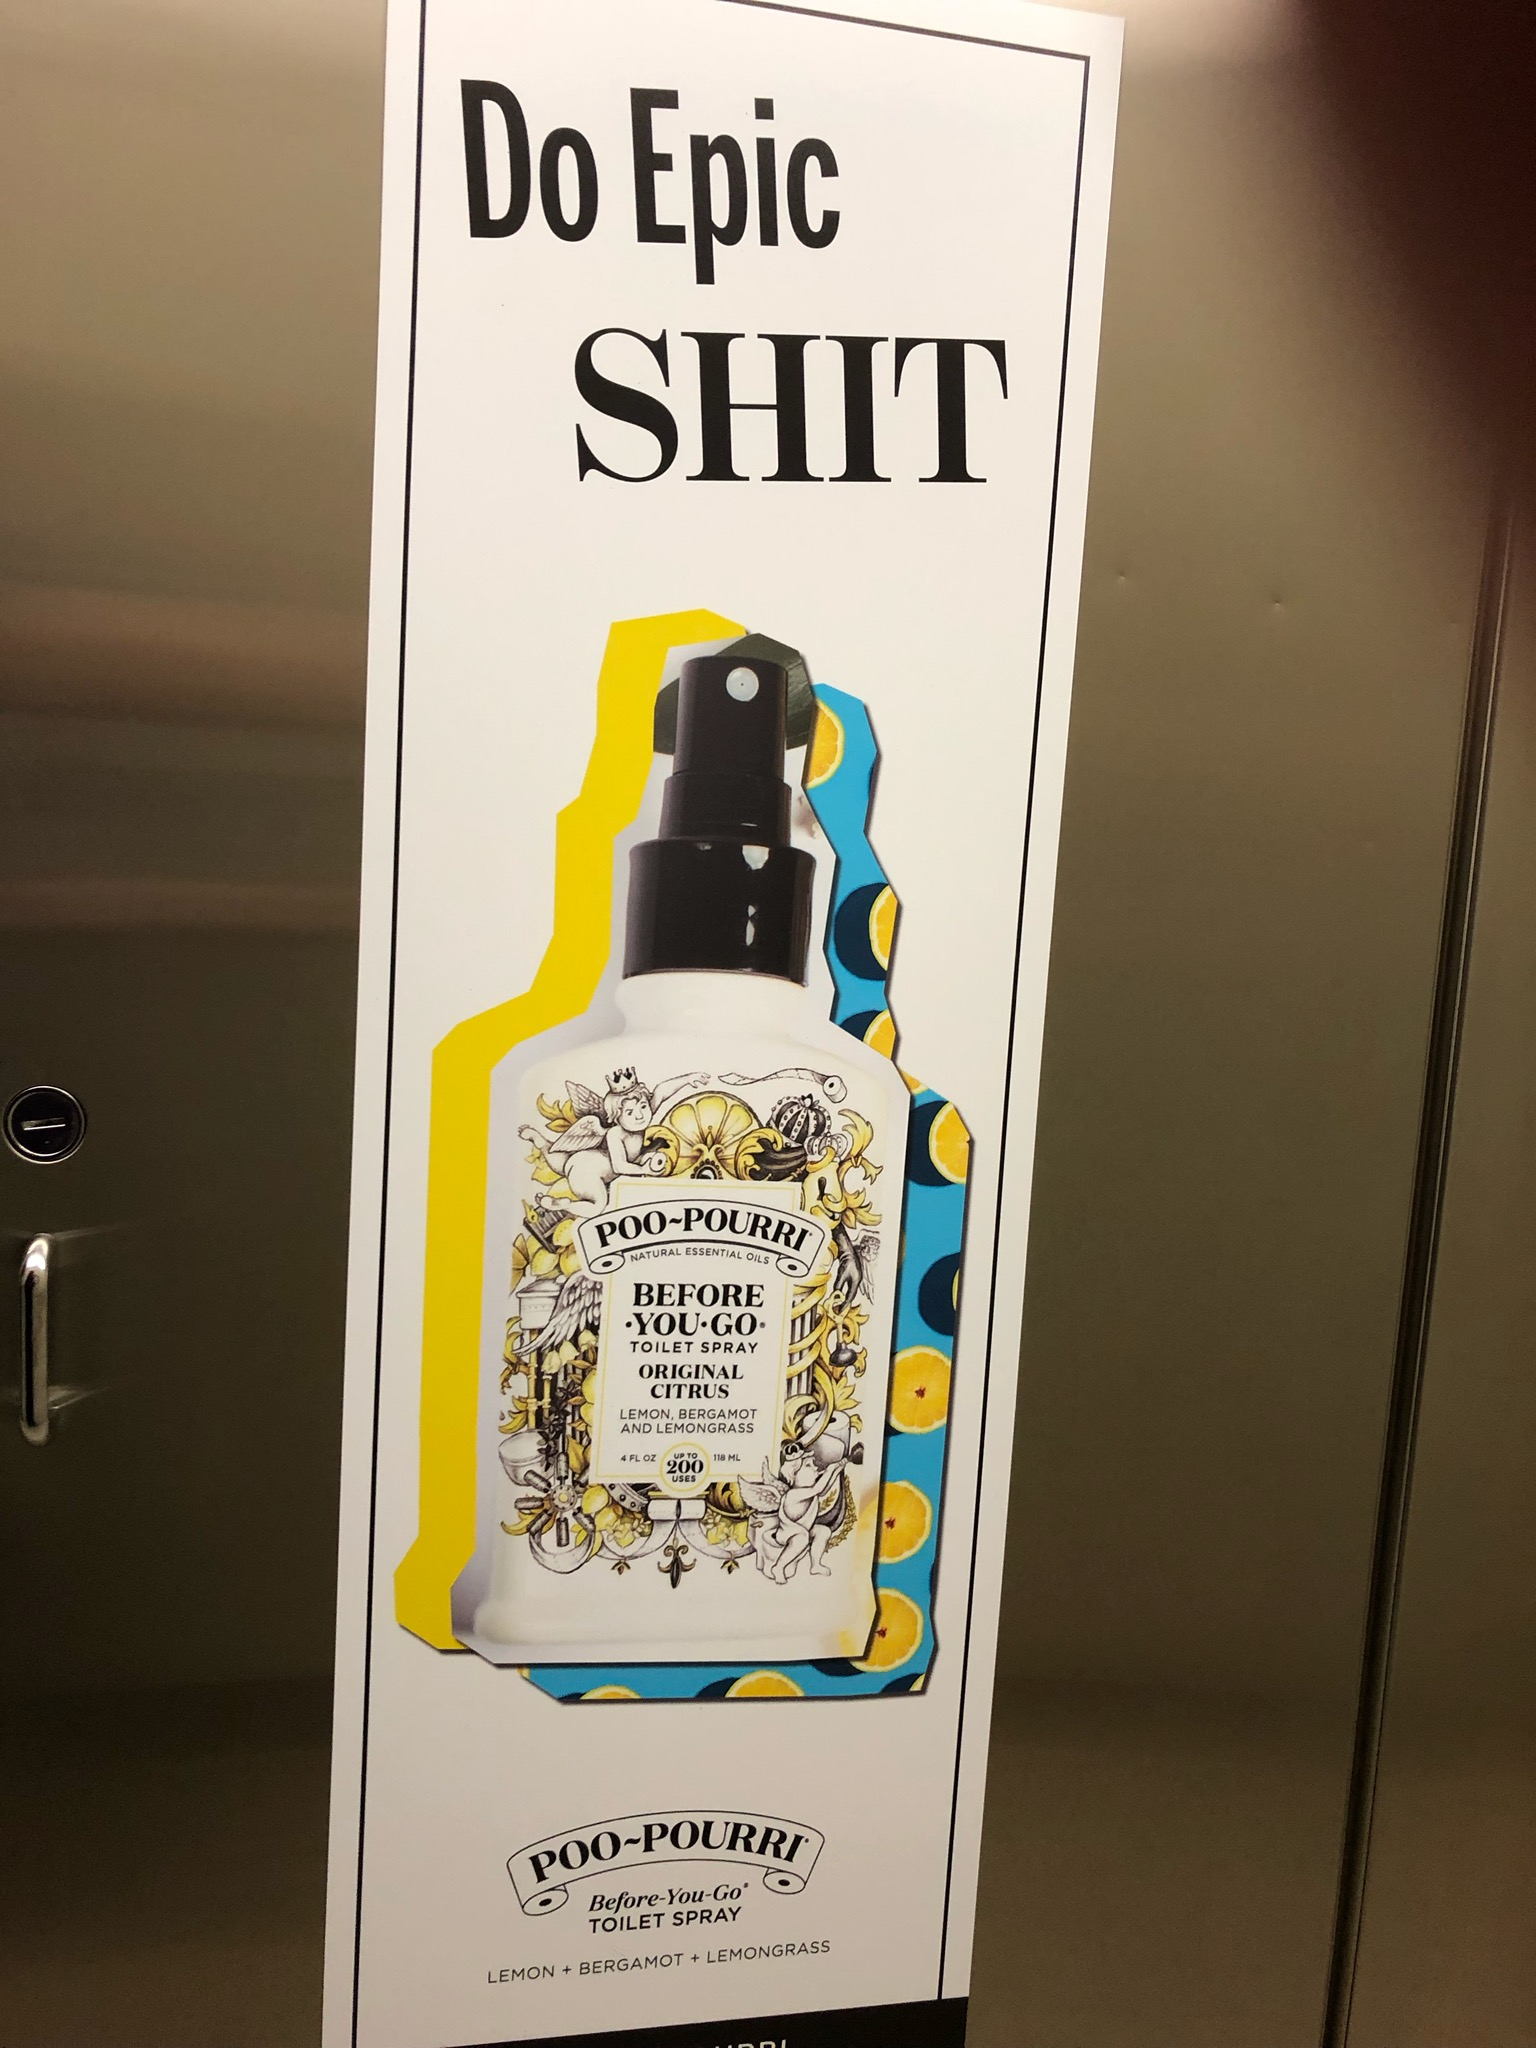 Poo-Pourri's consistent branding was present in the restrooms at the Women of Innovation series at Dallas Startup Week.